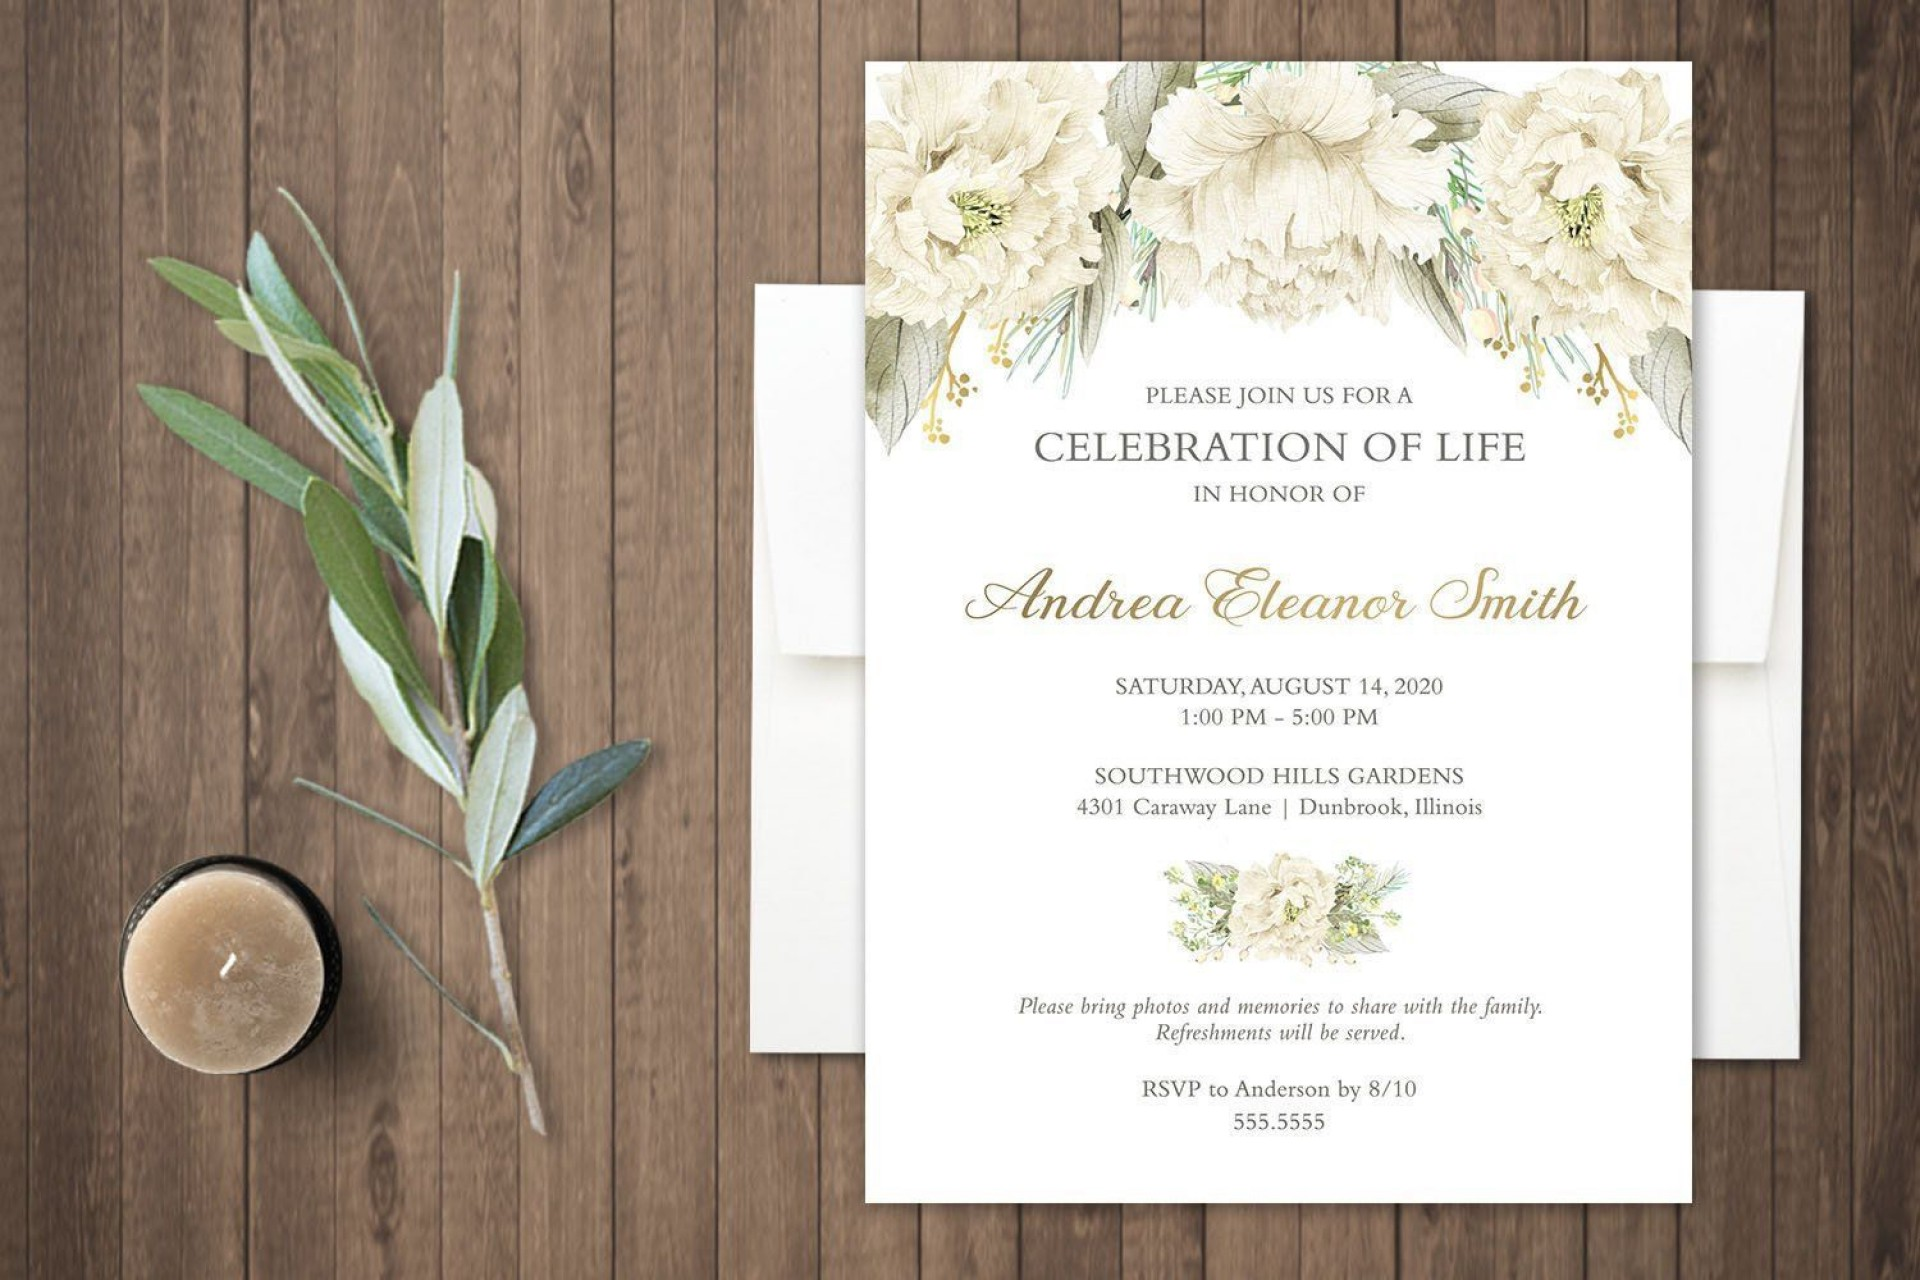 000 Singular Celebration Of Life Invite Template Free High Resolution  Invitation Download1920